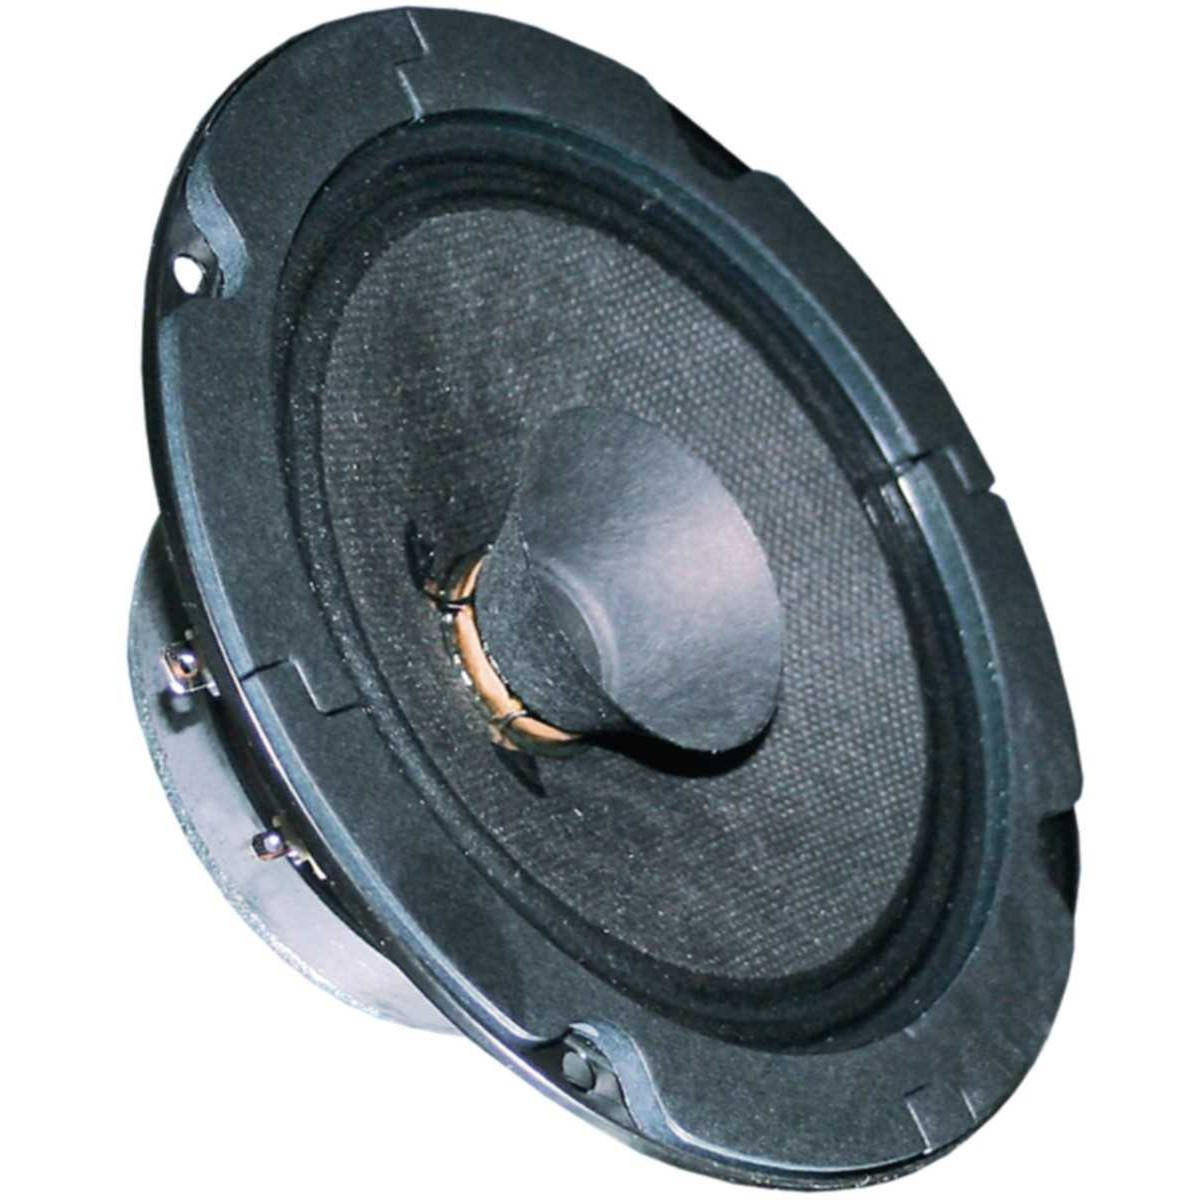 Breedband speaker met tweeter dome 13 cm VS-BG13P